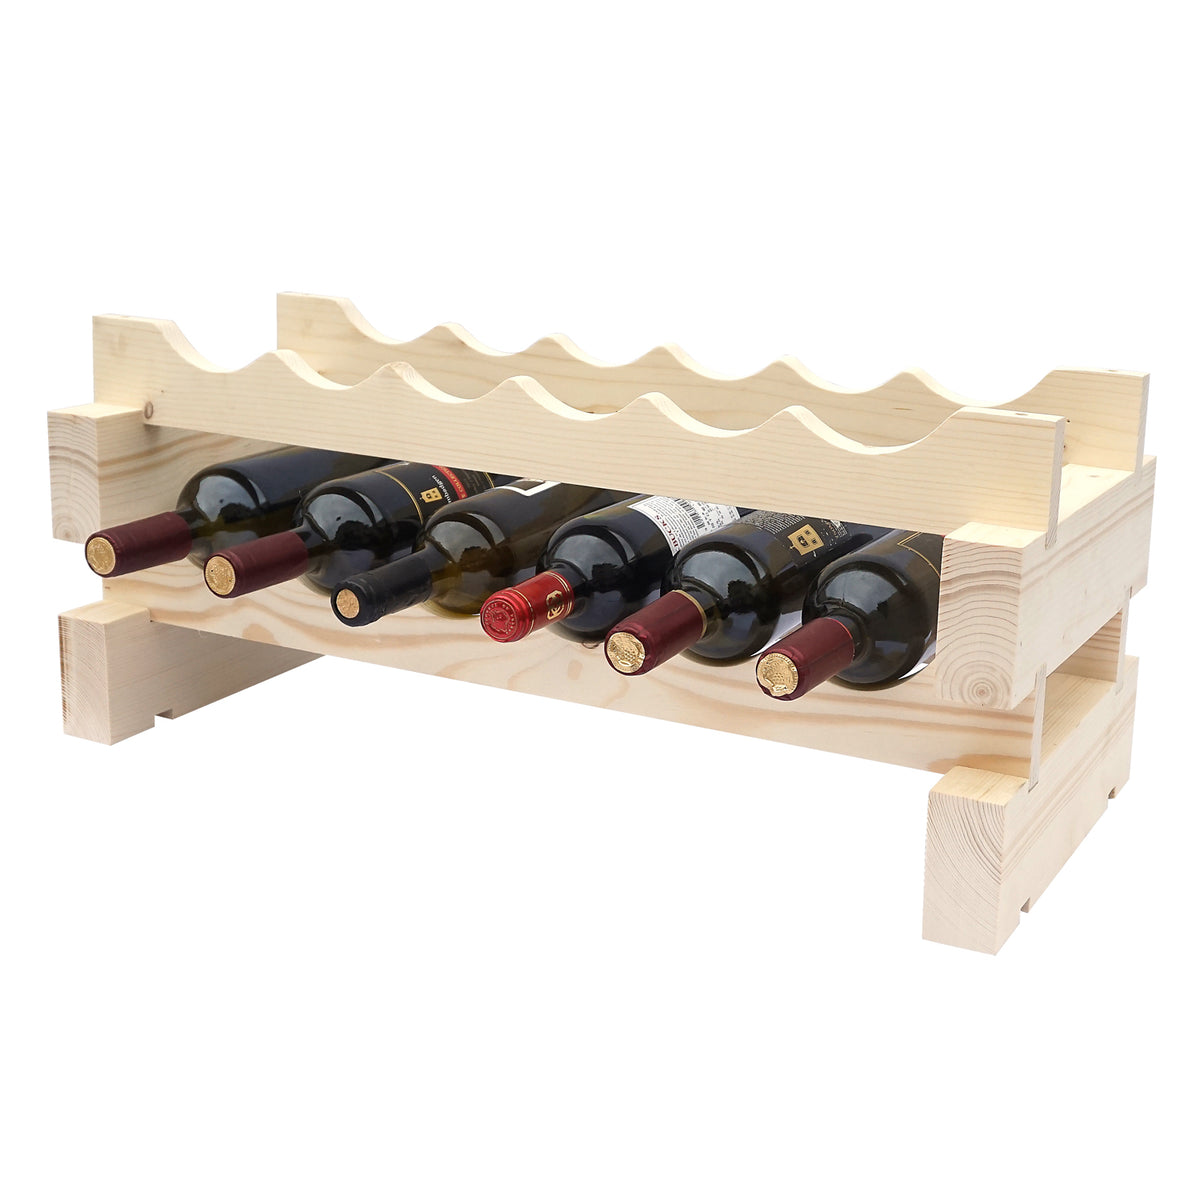 12 Bottle Modular Wine Rack